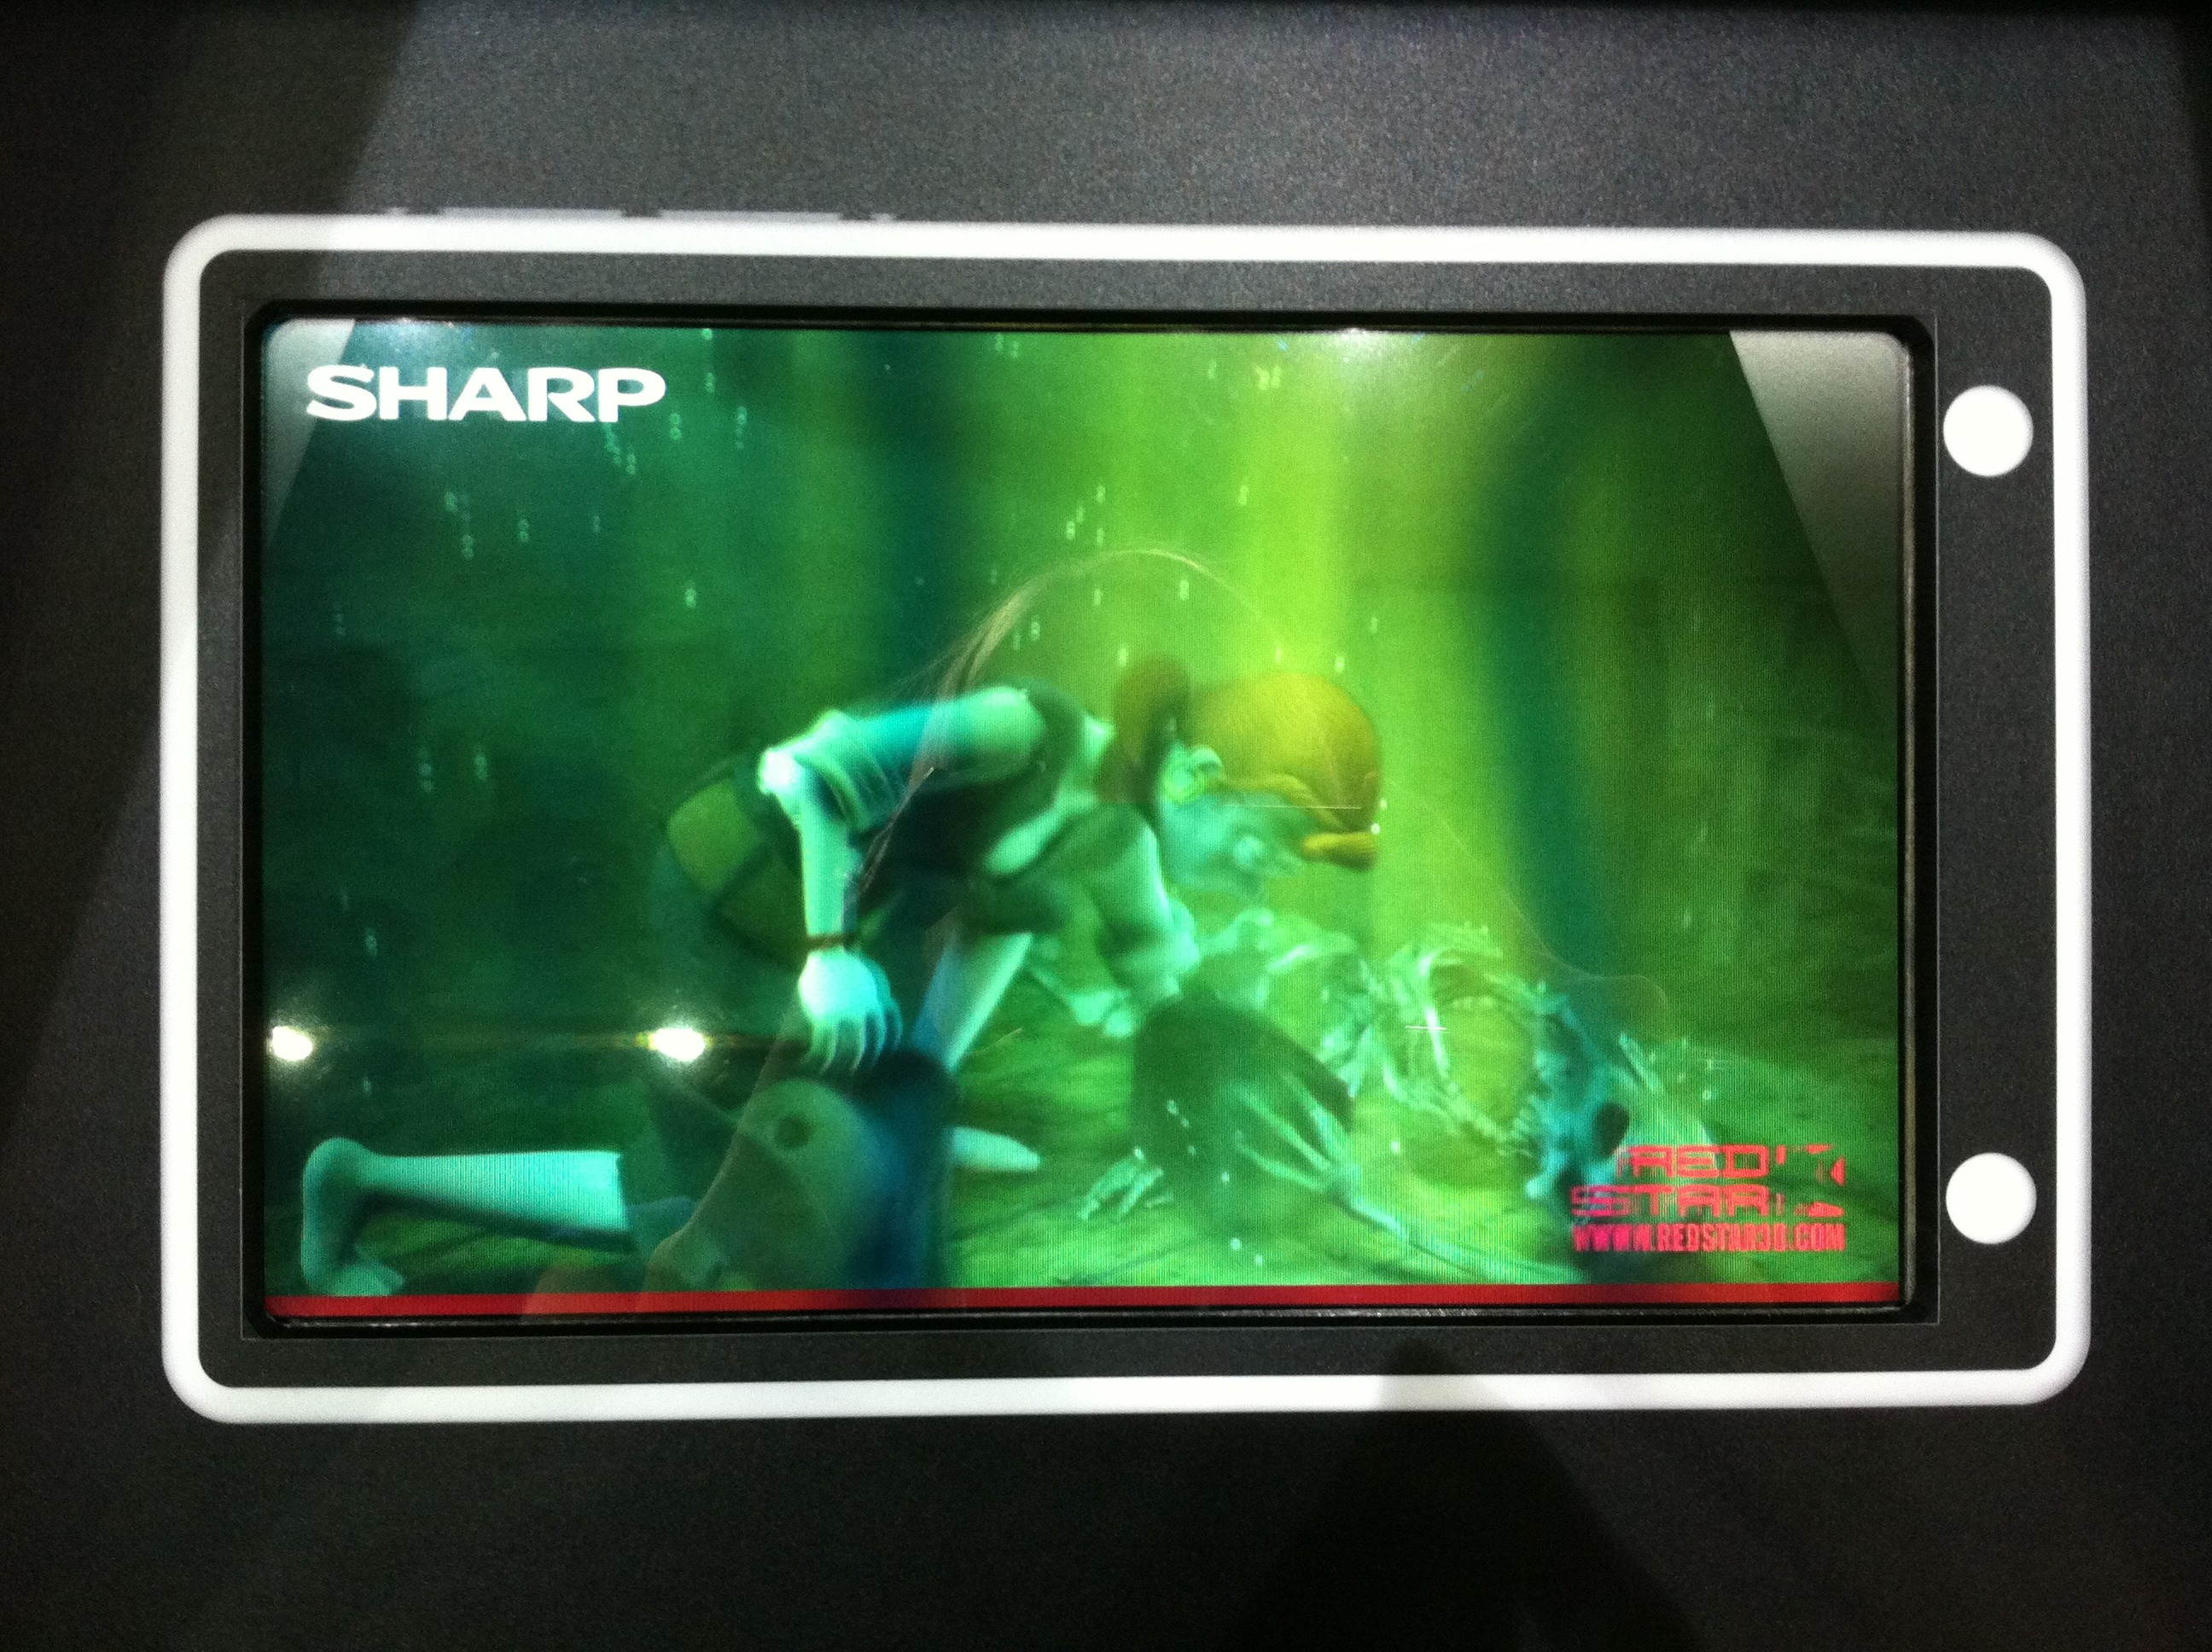 Sharp's glasses-less 3D works well. But right now it only works at a size best suited to mobile devices, not TV sets.